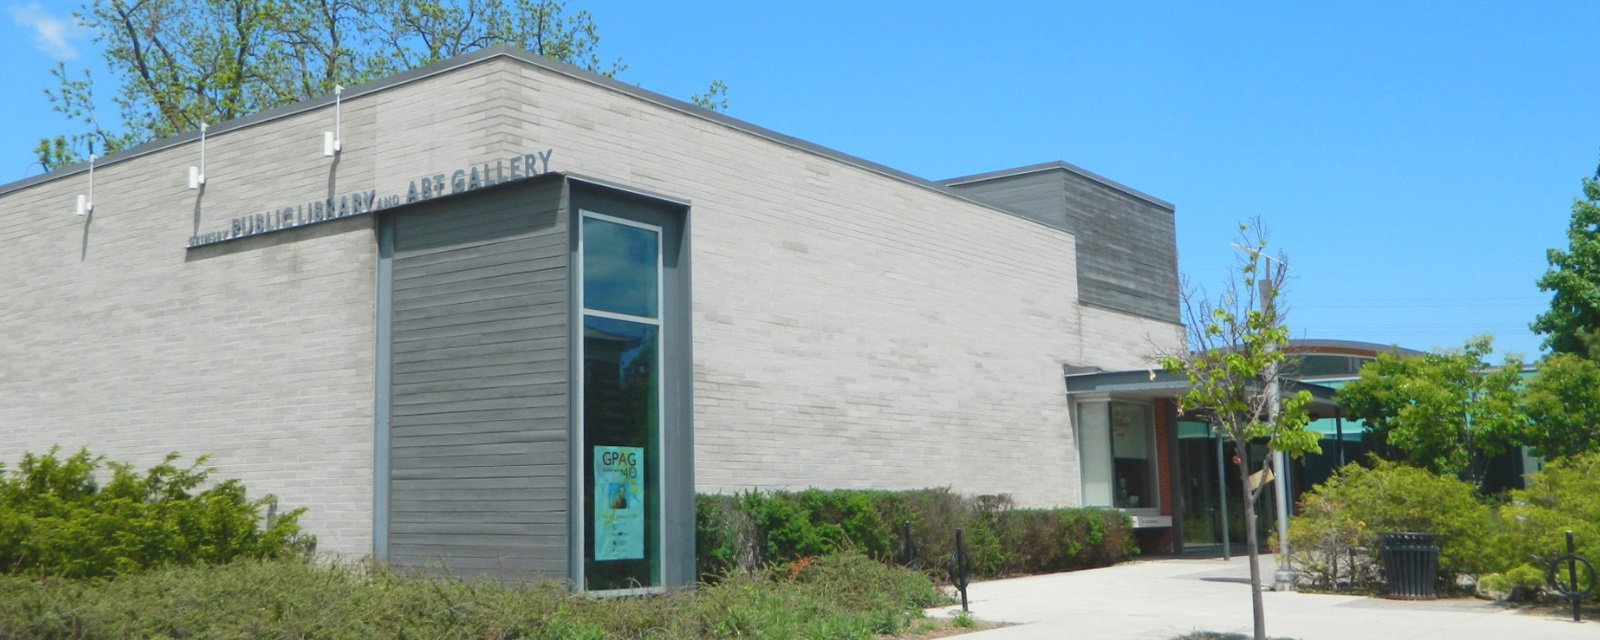 photo of the south side of the Grimsby Public Art Gallery building in the Summer